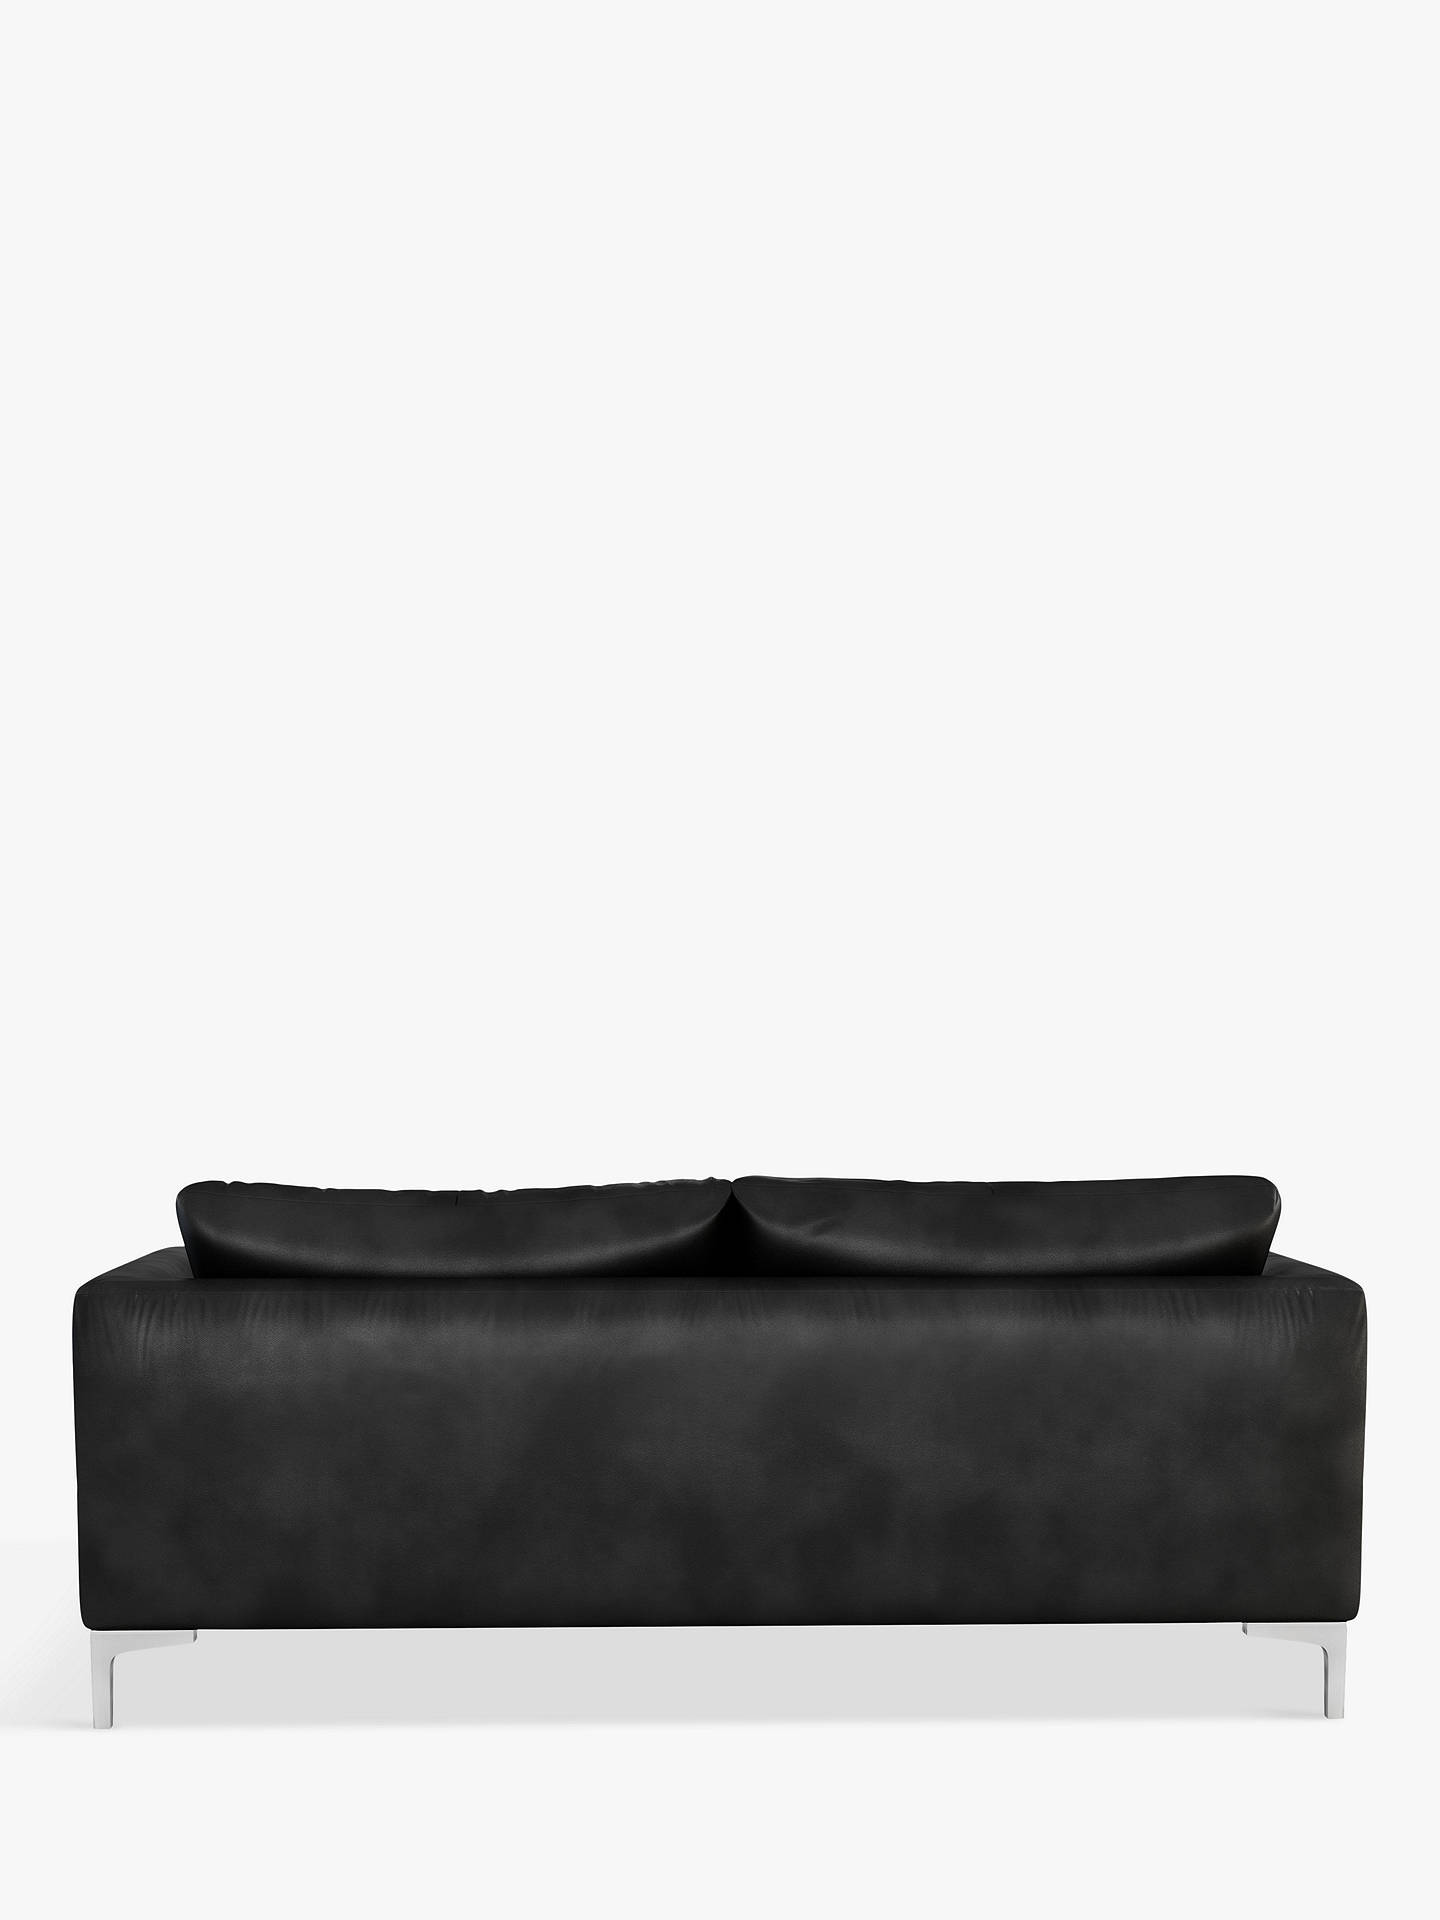 Buy John Lewis & Partners Belgrave Large 3 Seater Leather Sofa, Metal Leg, Nature Black Online at johnlewis.com